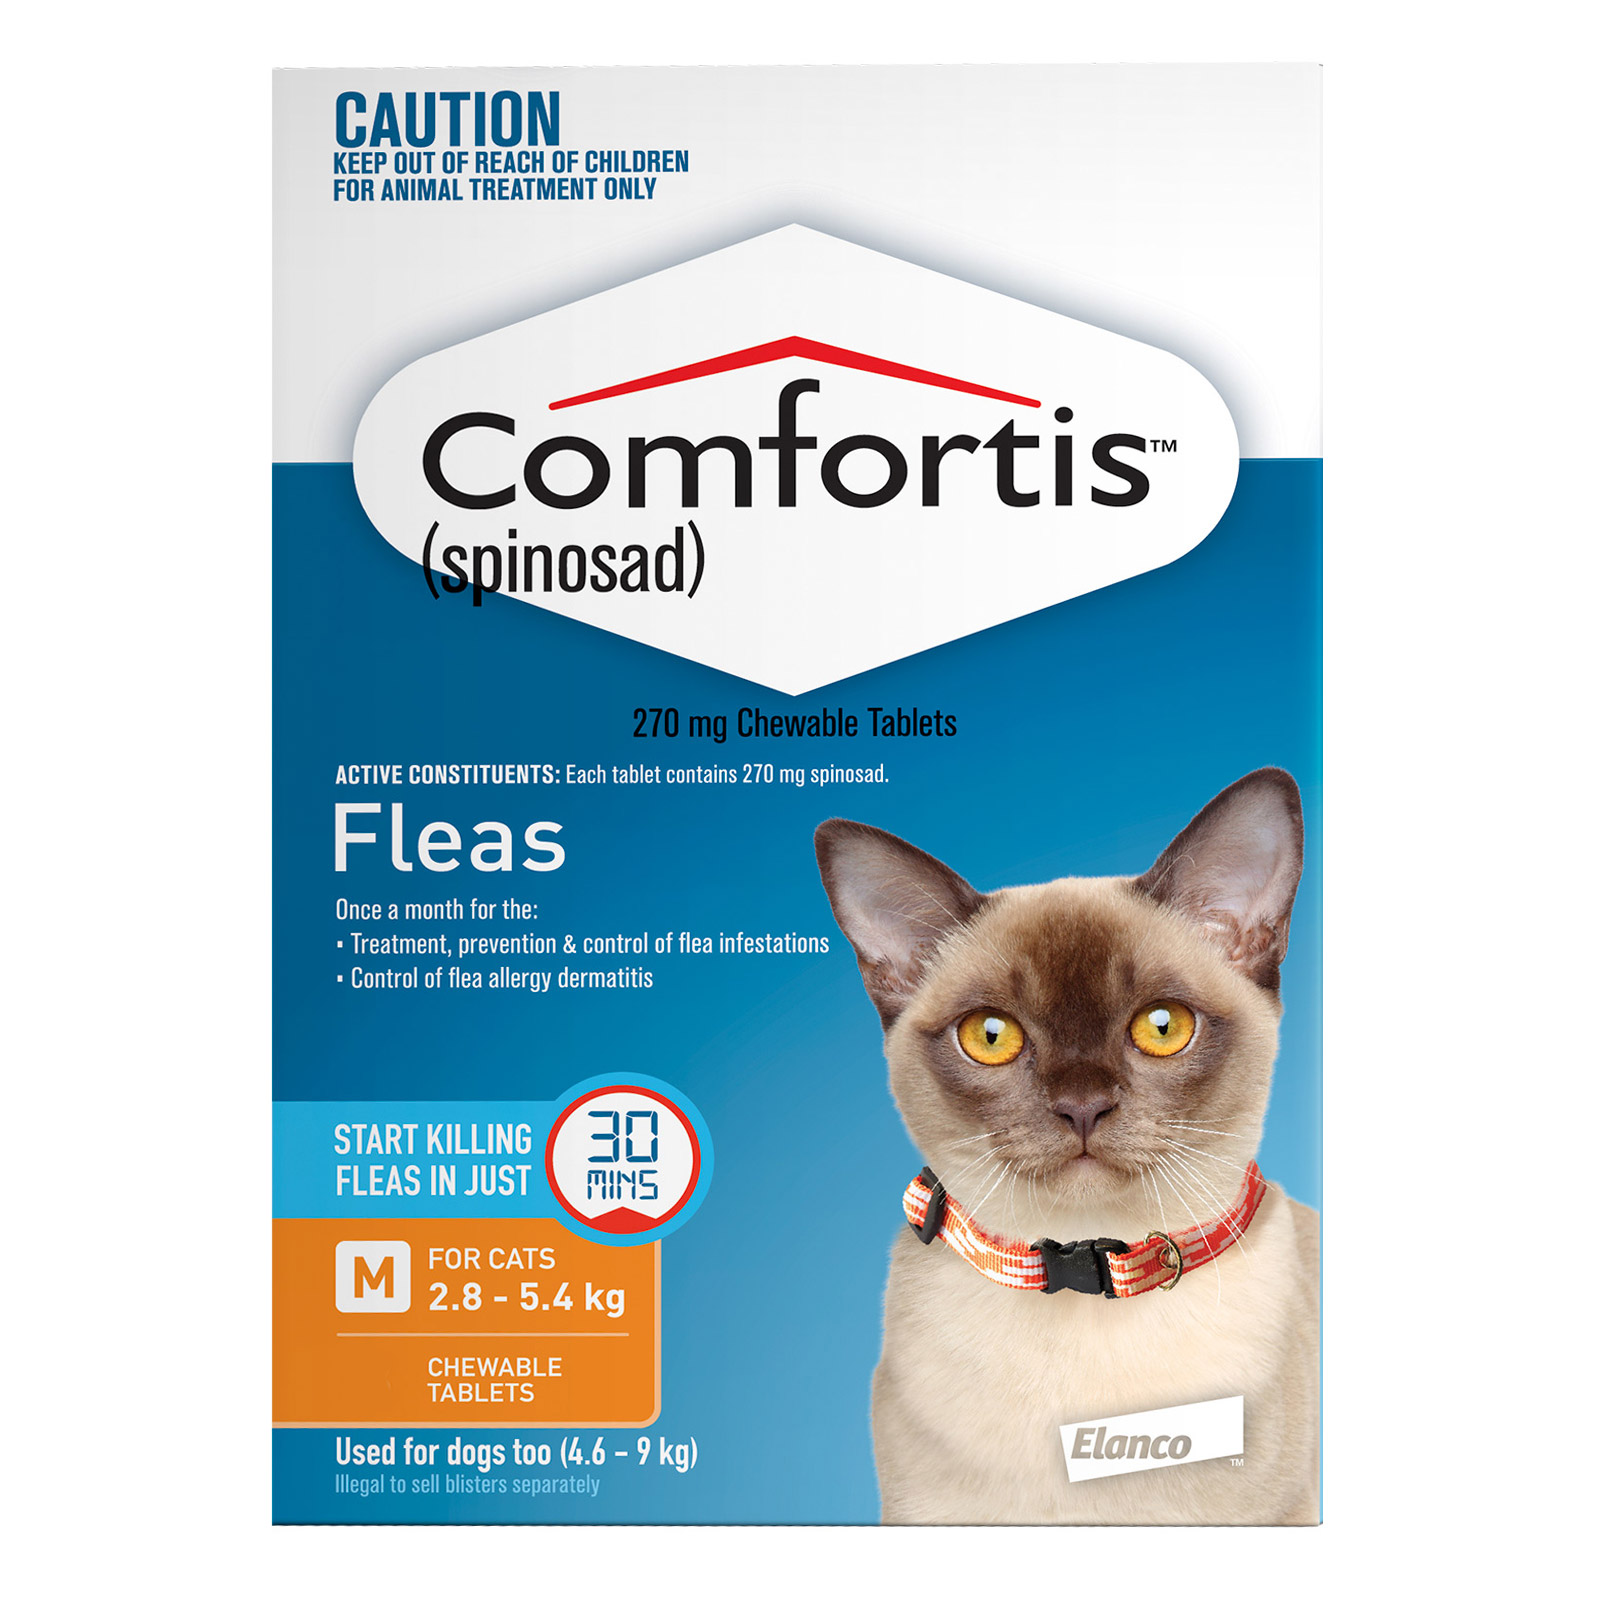 For Cats 2.8 - 5.4 KG (Orange)